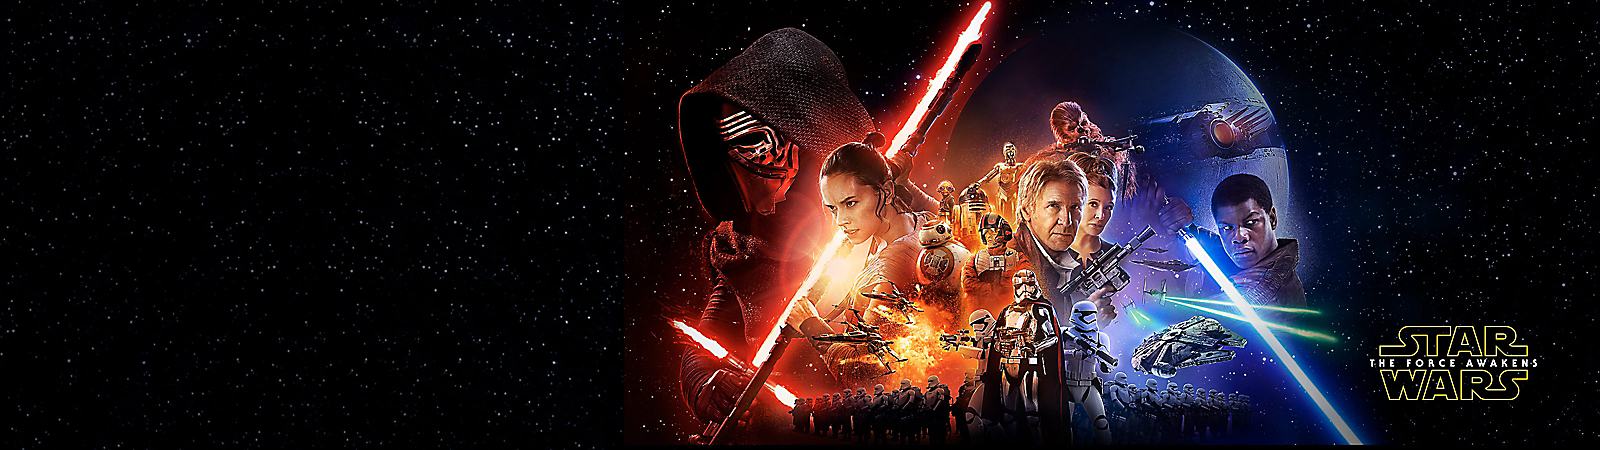 Background image of Star Wars: The Force Awakens